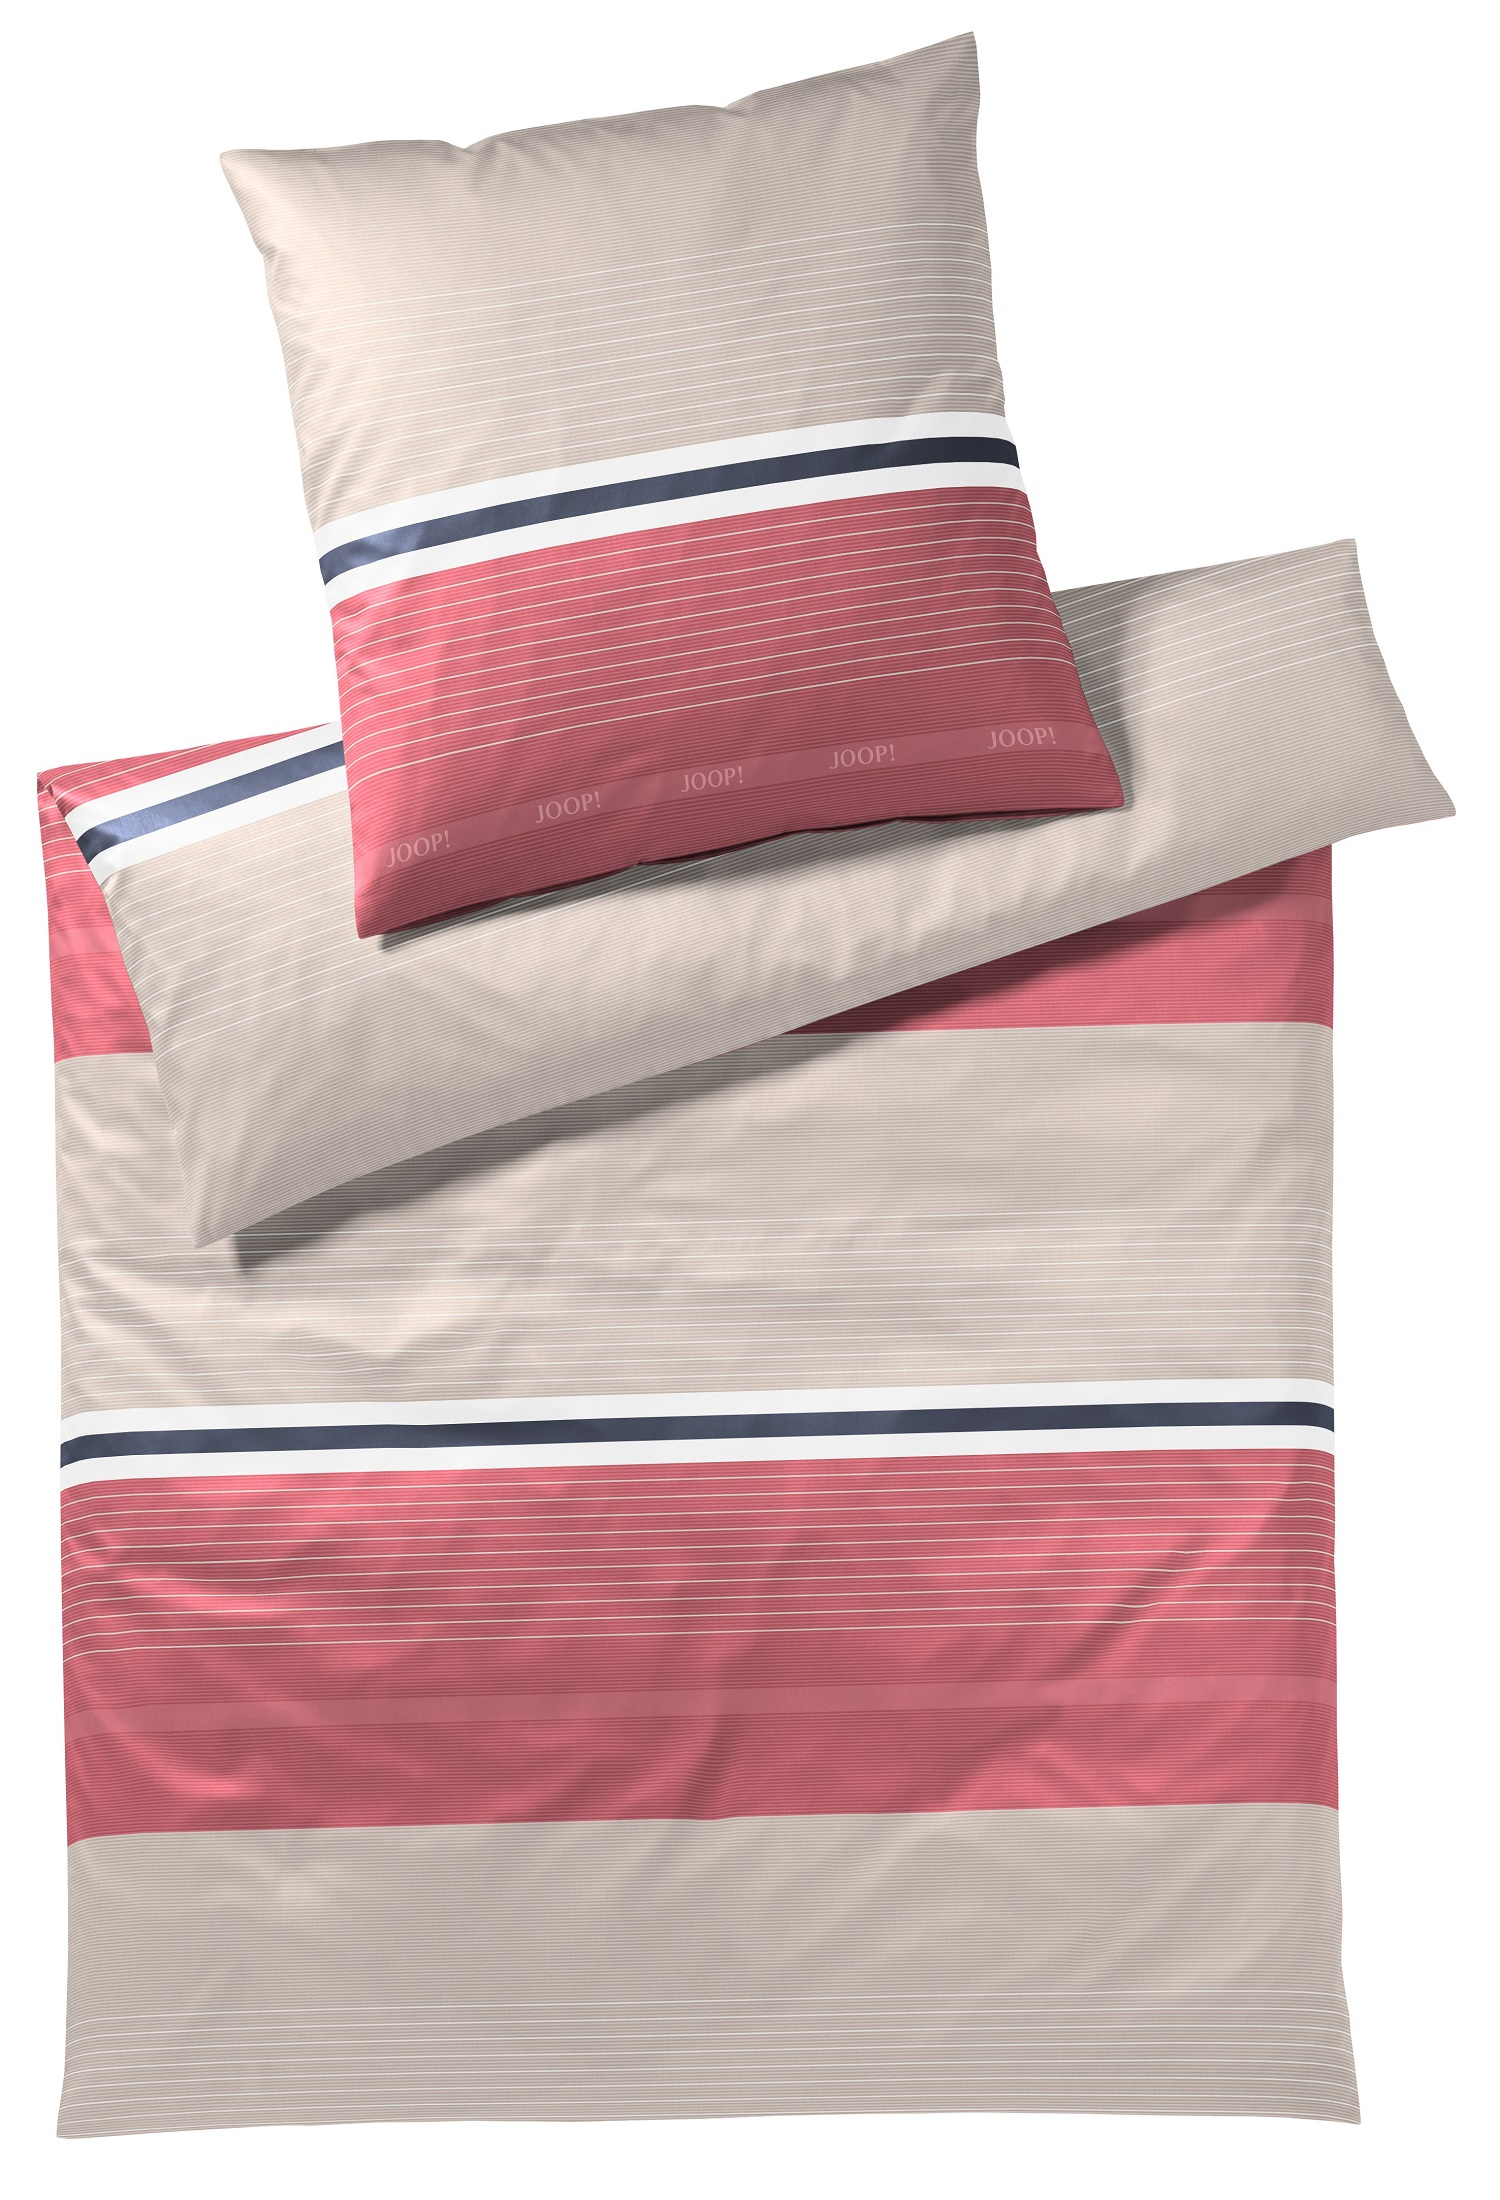 JOOP! Bettwäsche Fit 4091-01 Coral 135x200 cm Kollektion 2020